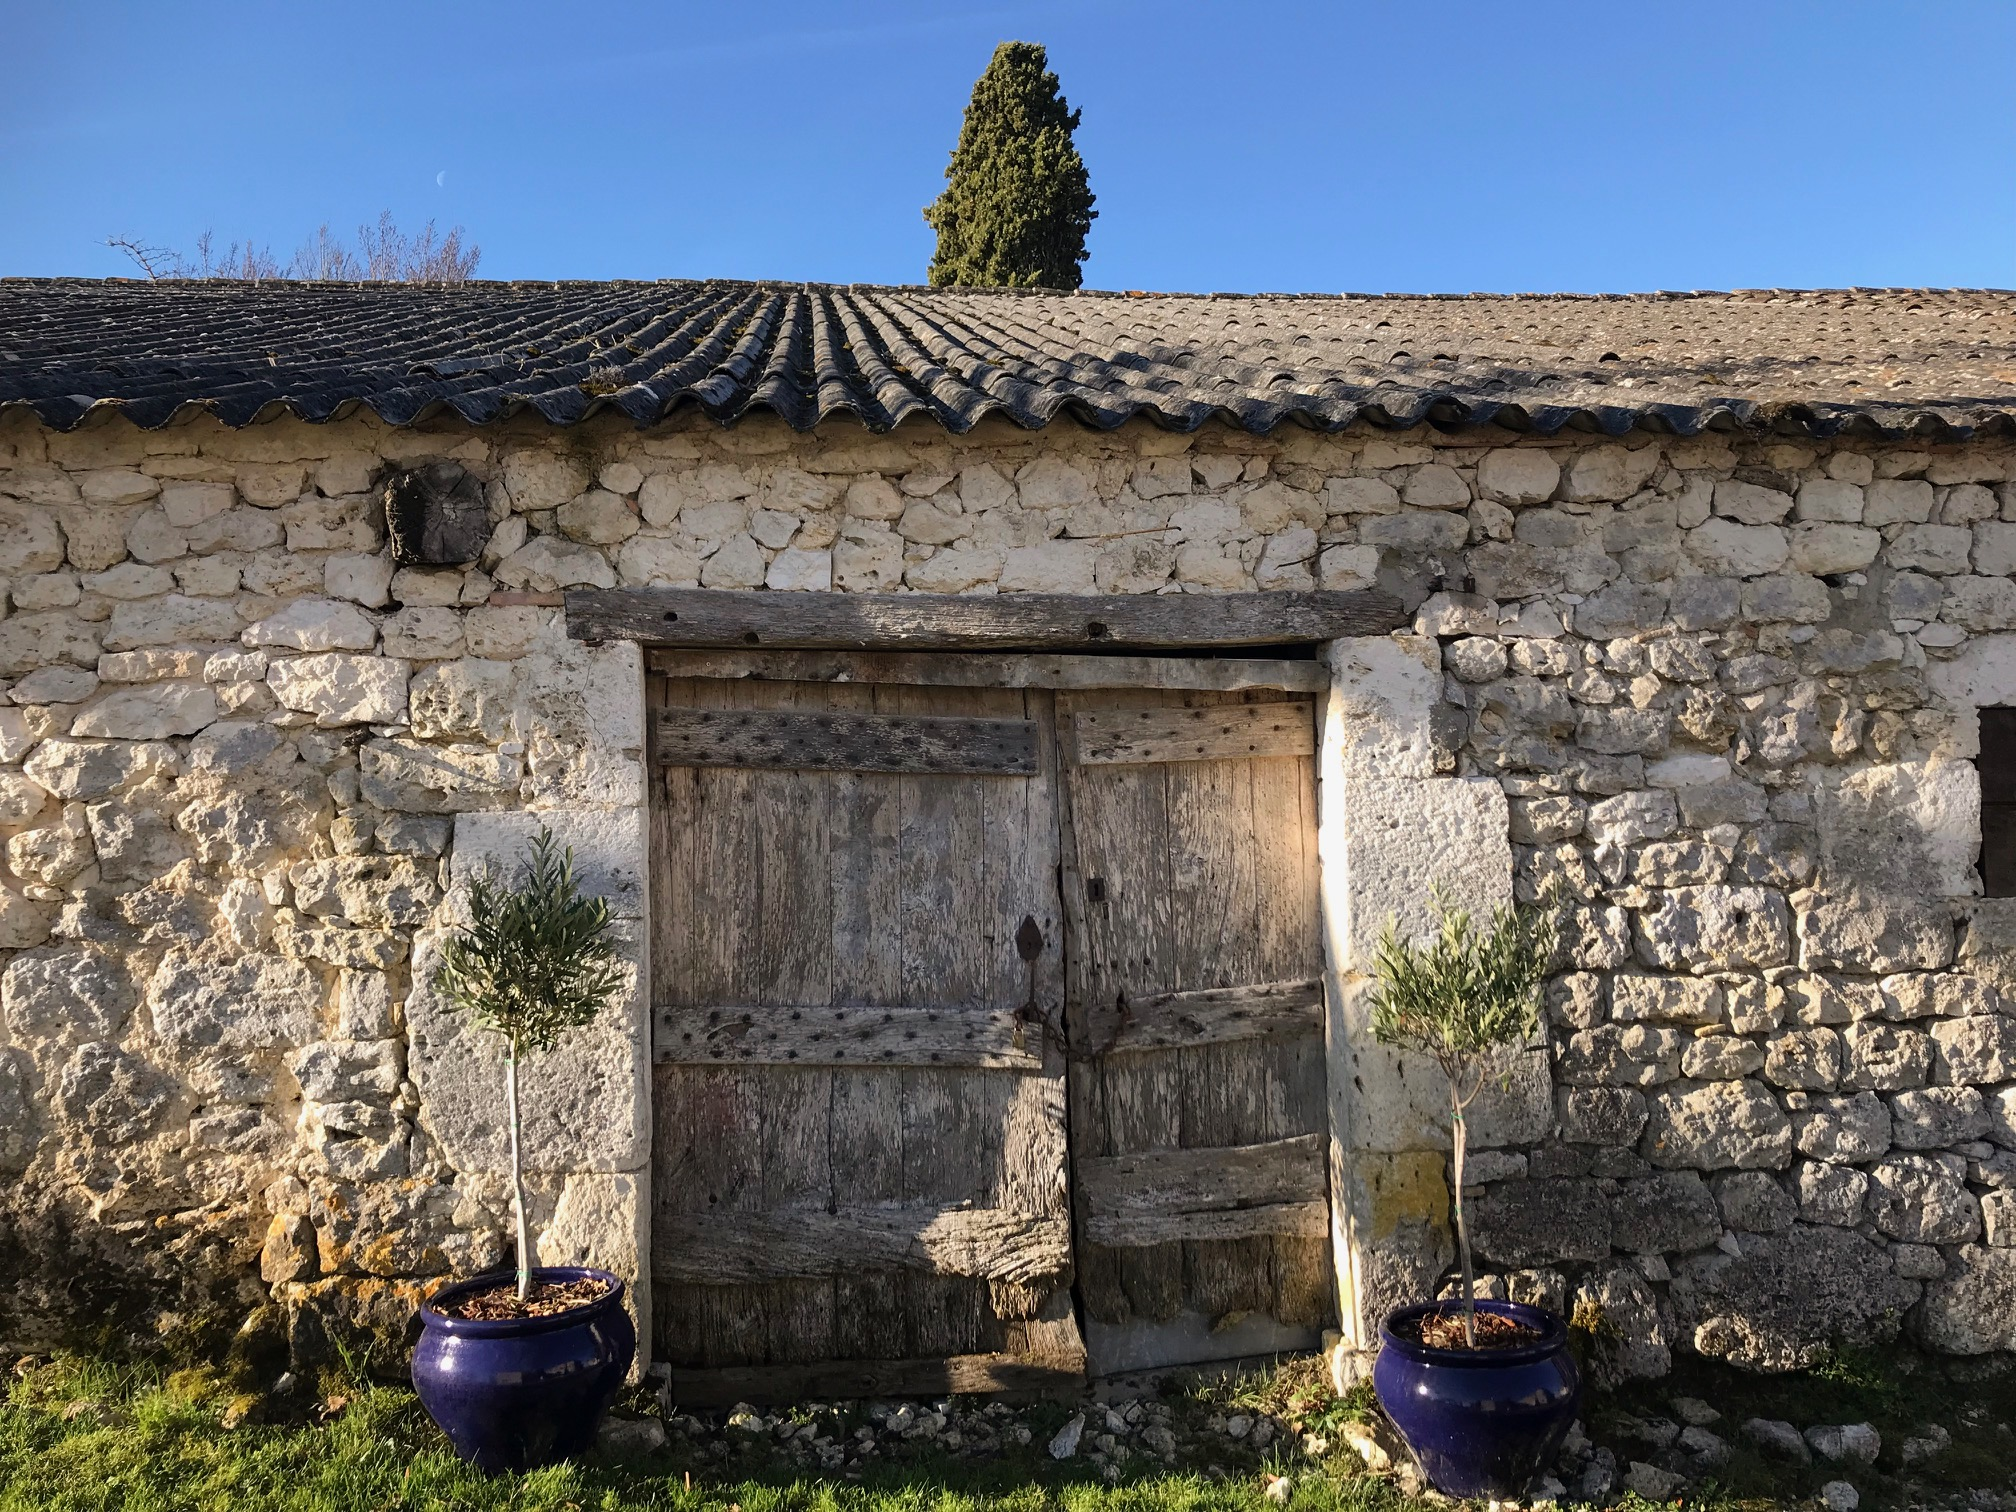 The olive trees have come out of their winter home and have a new spot at the entrance to the old barn.